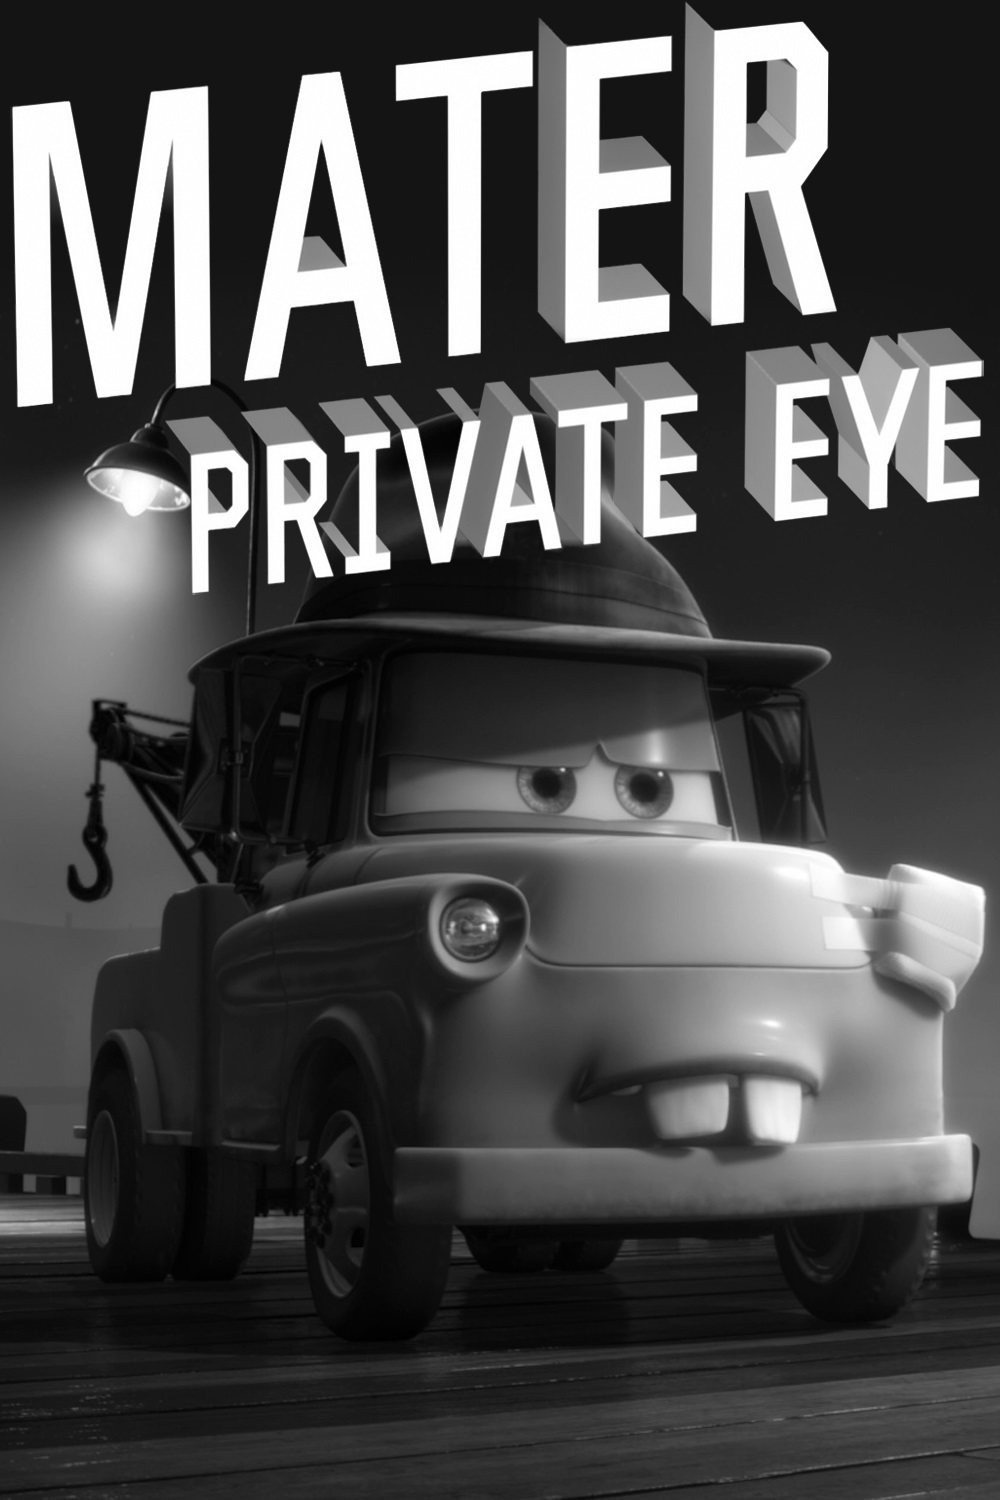 mater private eye.jpg